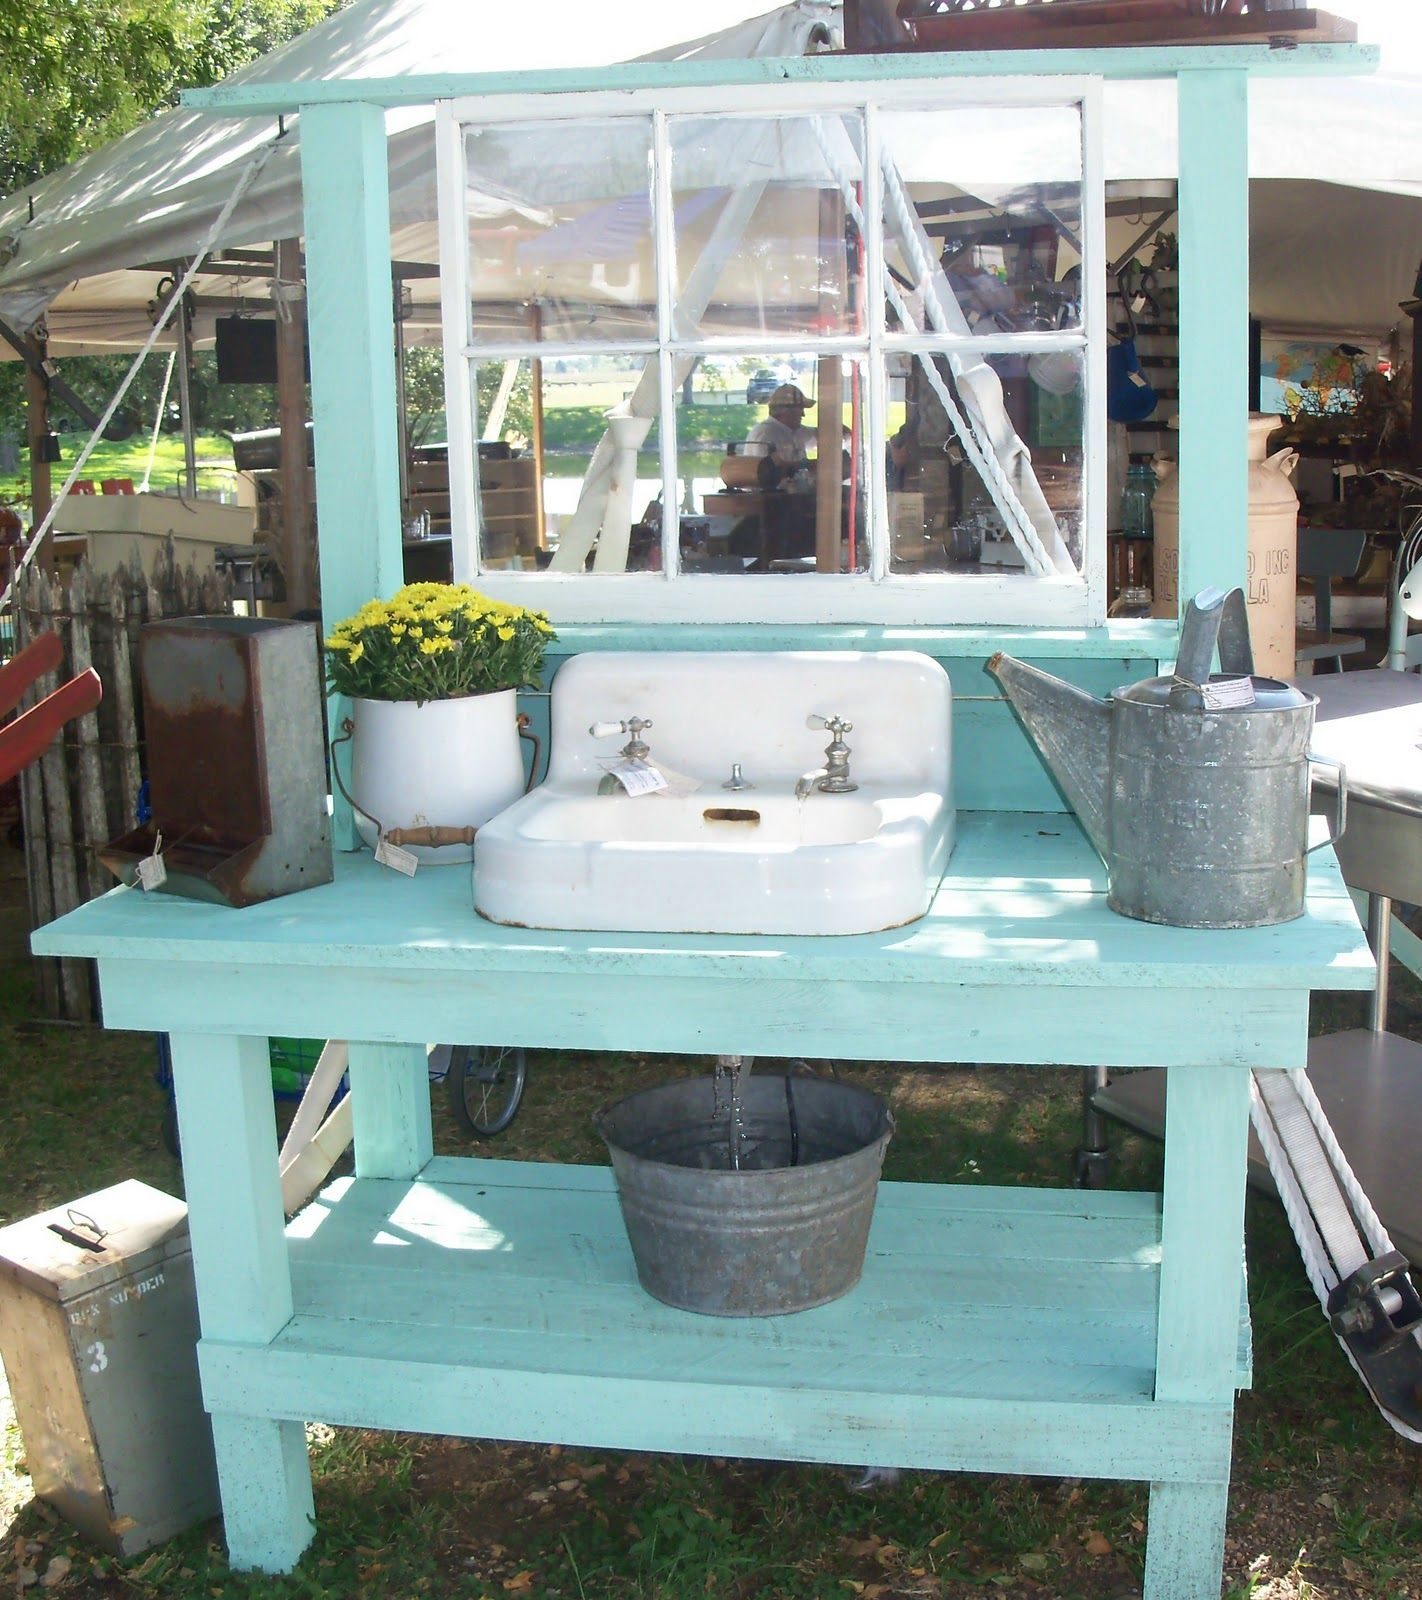 Garden Potting Bench With Sink Potting bench with sink check back for more pictureswe were potting bench with sink check back for more pictureswe workwithnaturefo